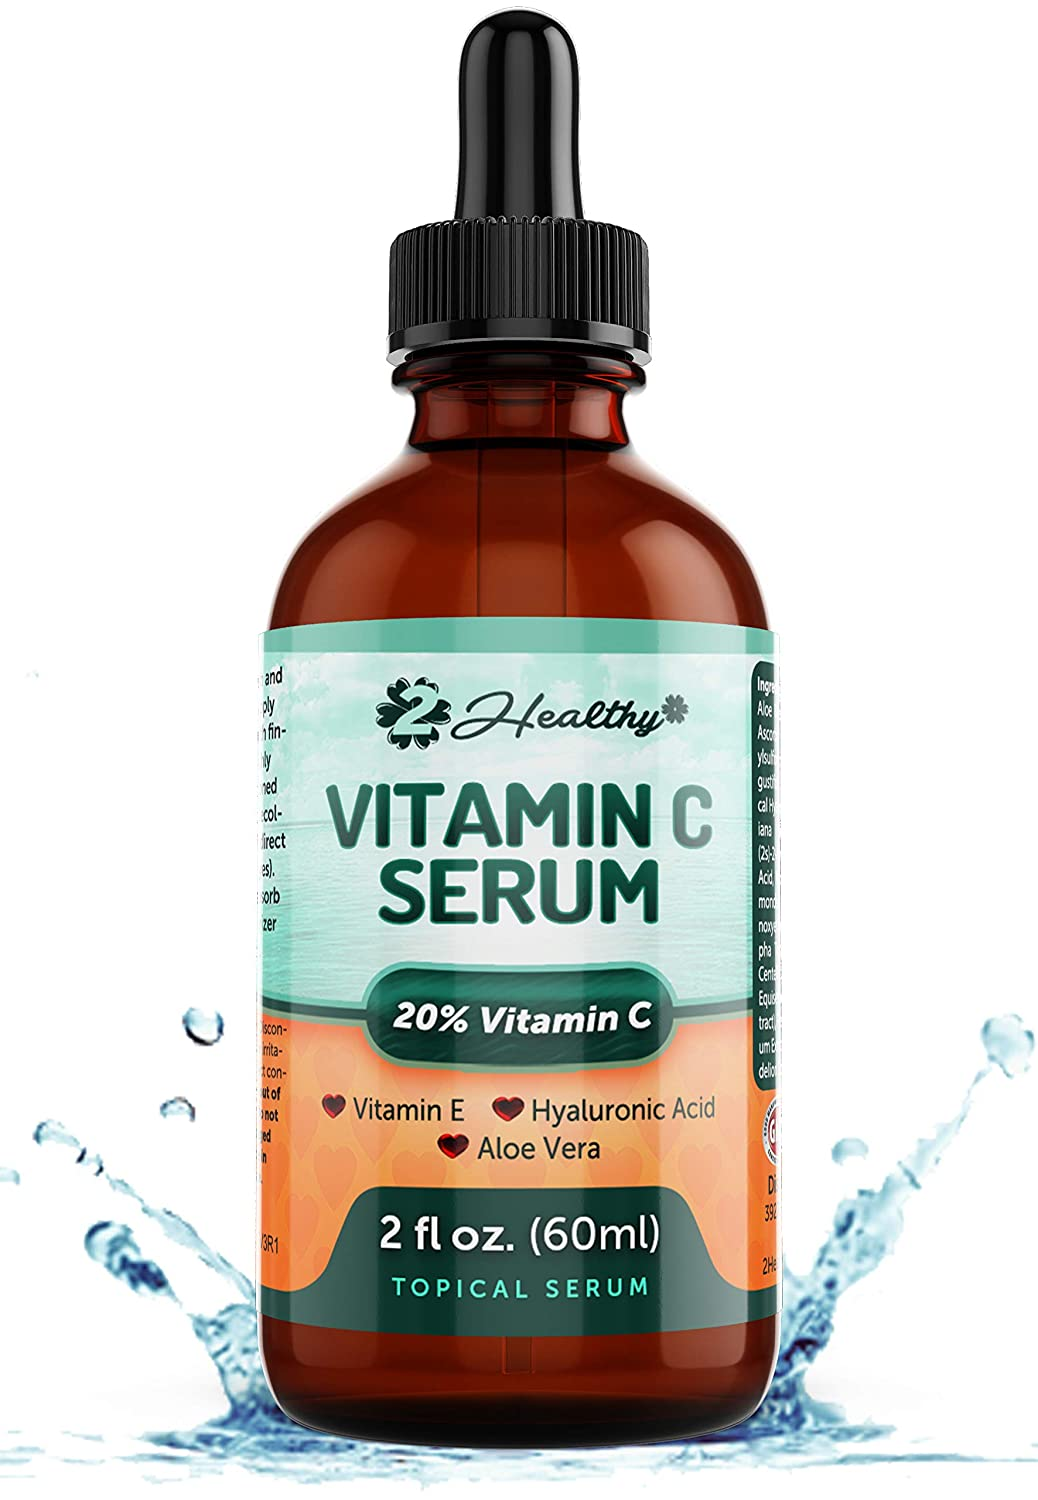 Vitamin C Serum for Face (DOUBLE SIZED) with Hyaluronic Acid & Vitamin E - Anti Aging Wrinkle Skin Care Topical Facial Oil with Aloe Vera, Dark Spot Remover Color Corrector, Acne Scar Removal, 2 Fl oz